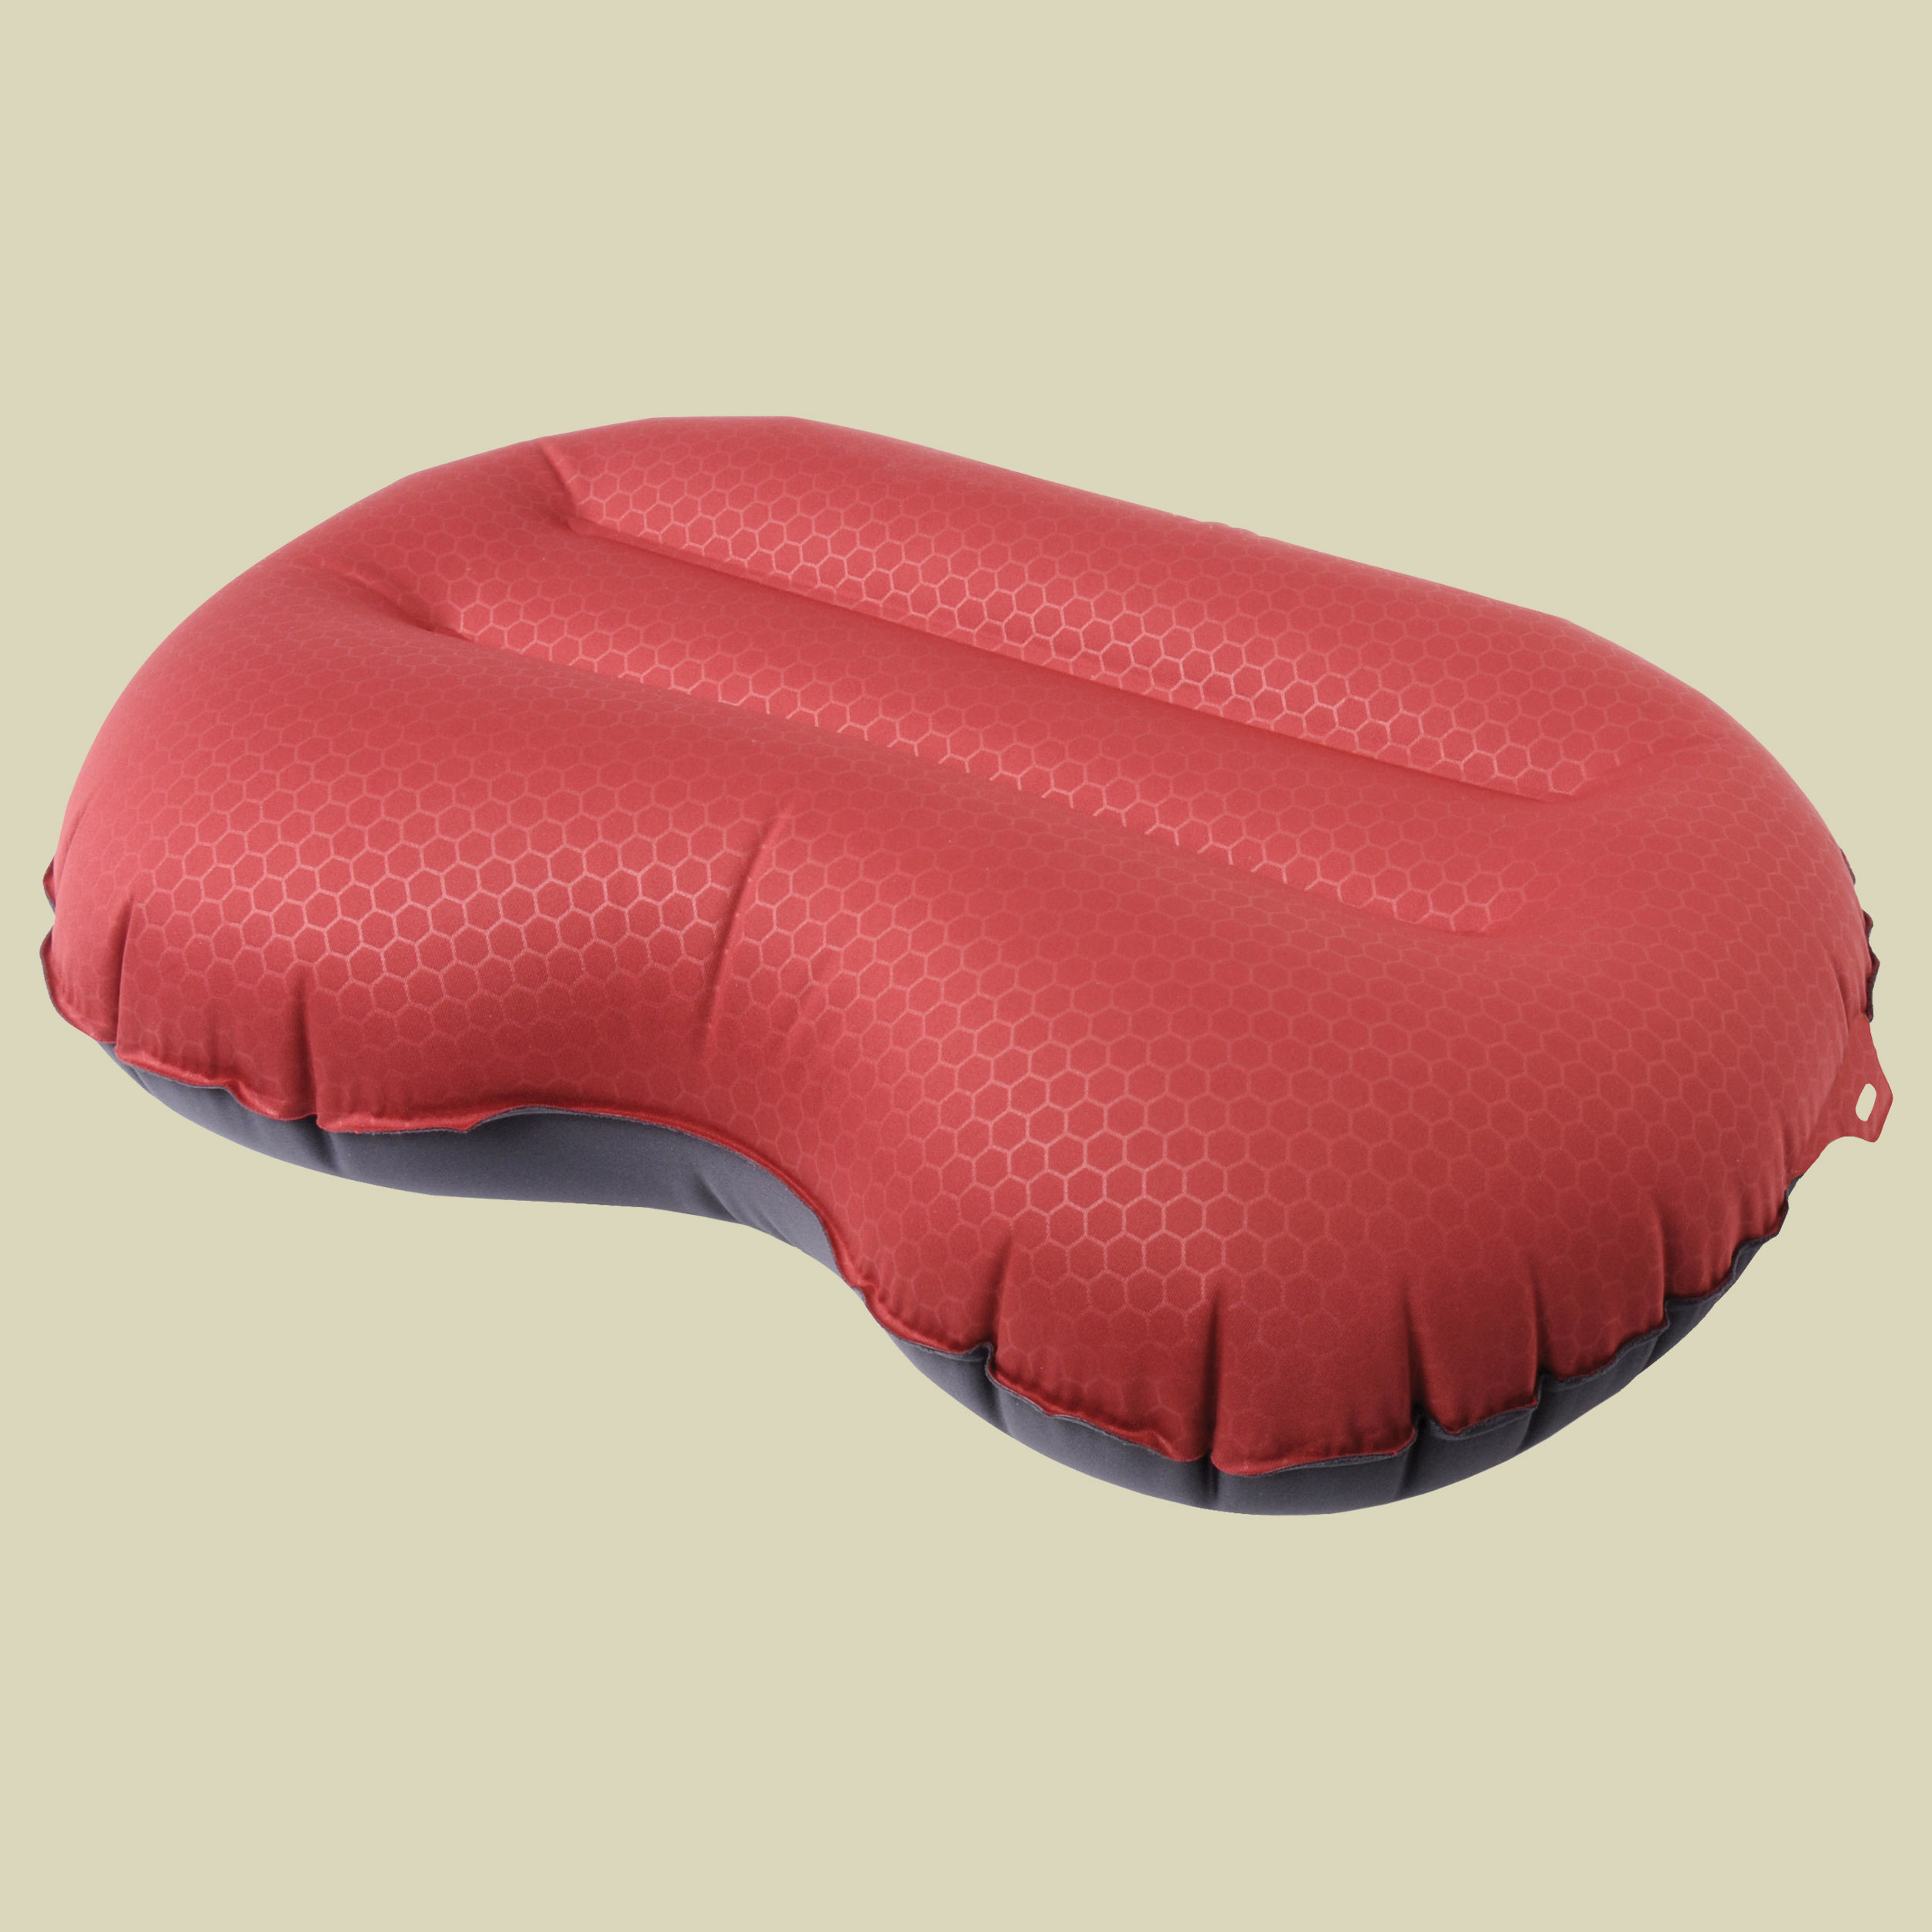 Exped Air Pillow L Kopfkissen 46 x 30 x 12 cm red